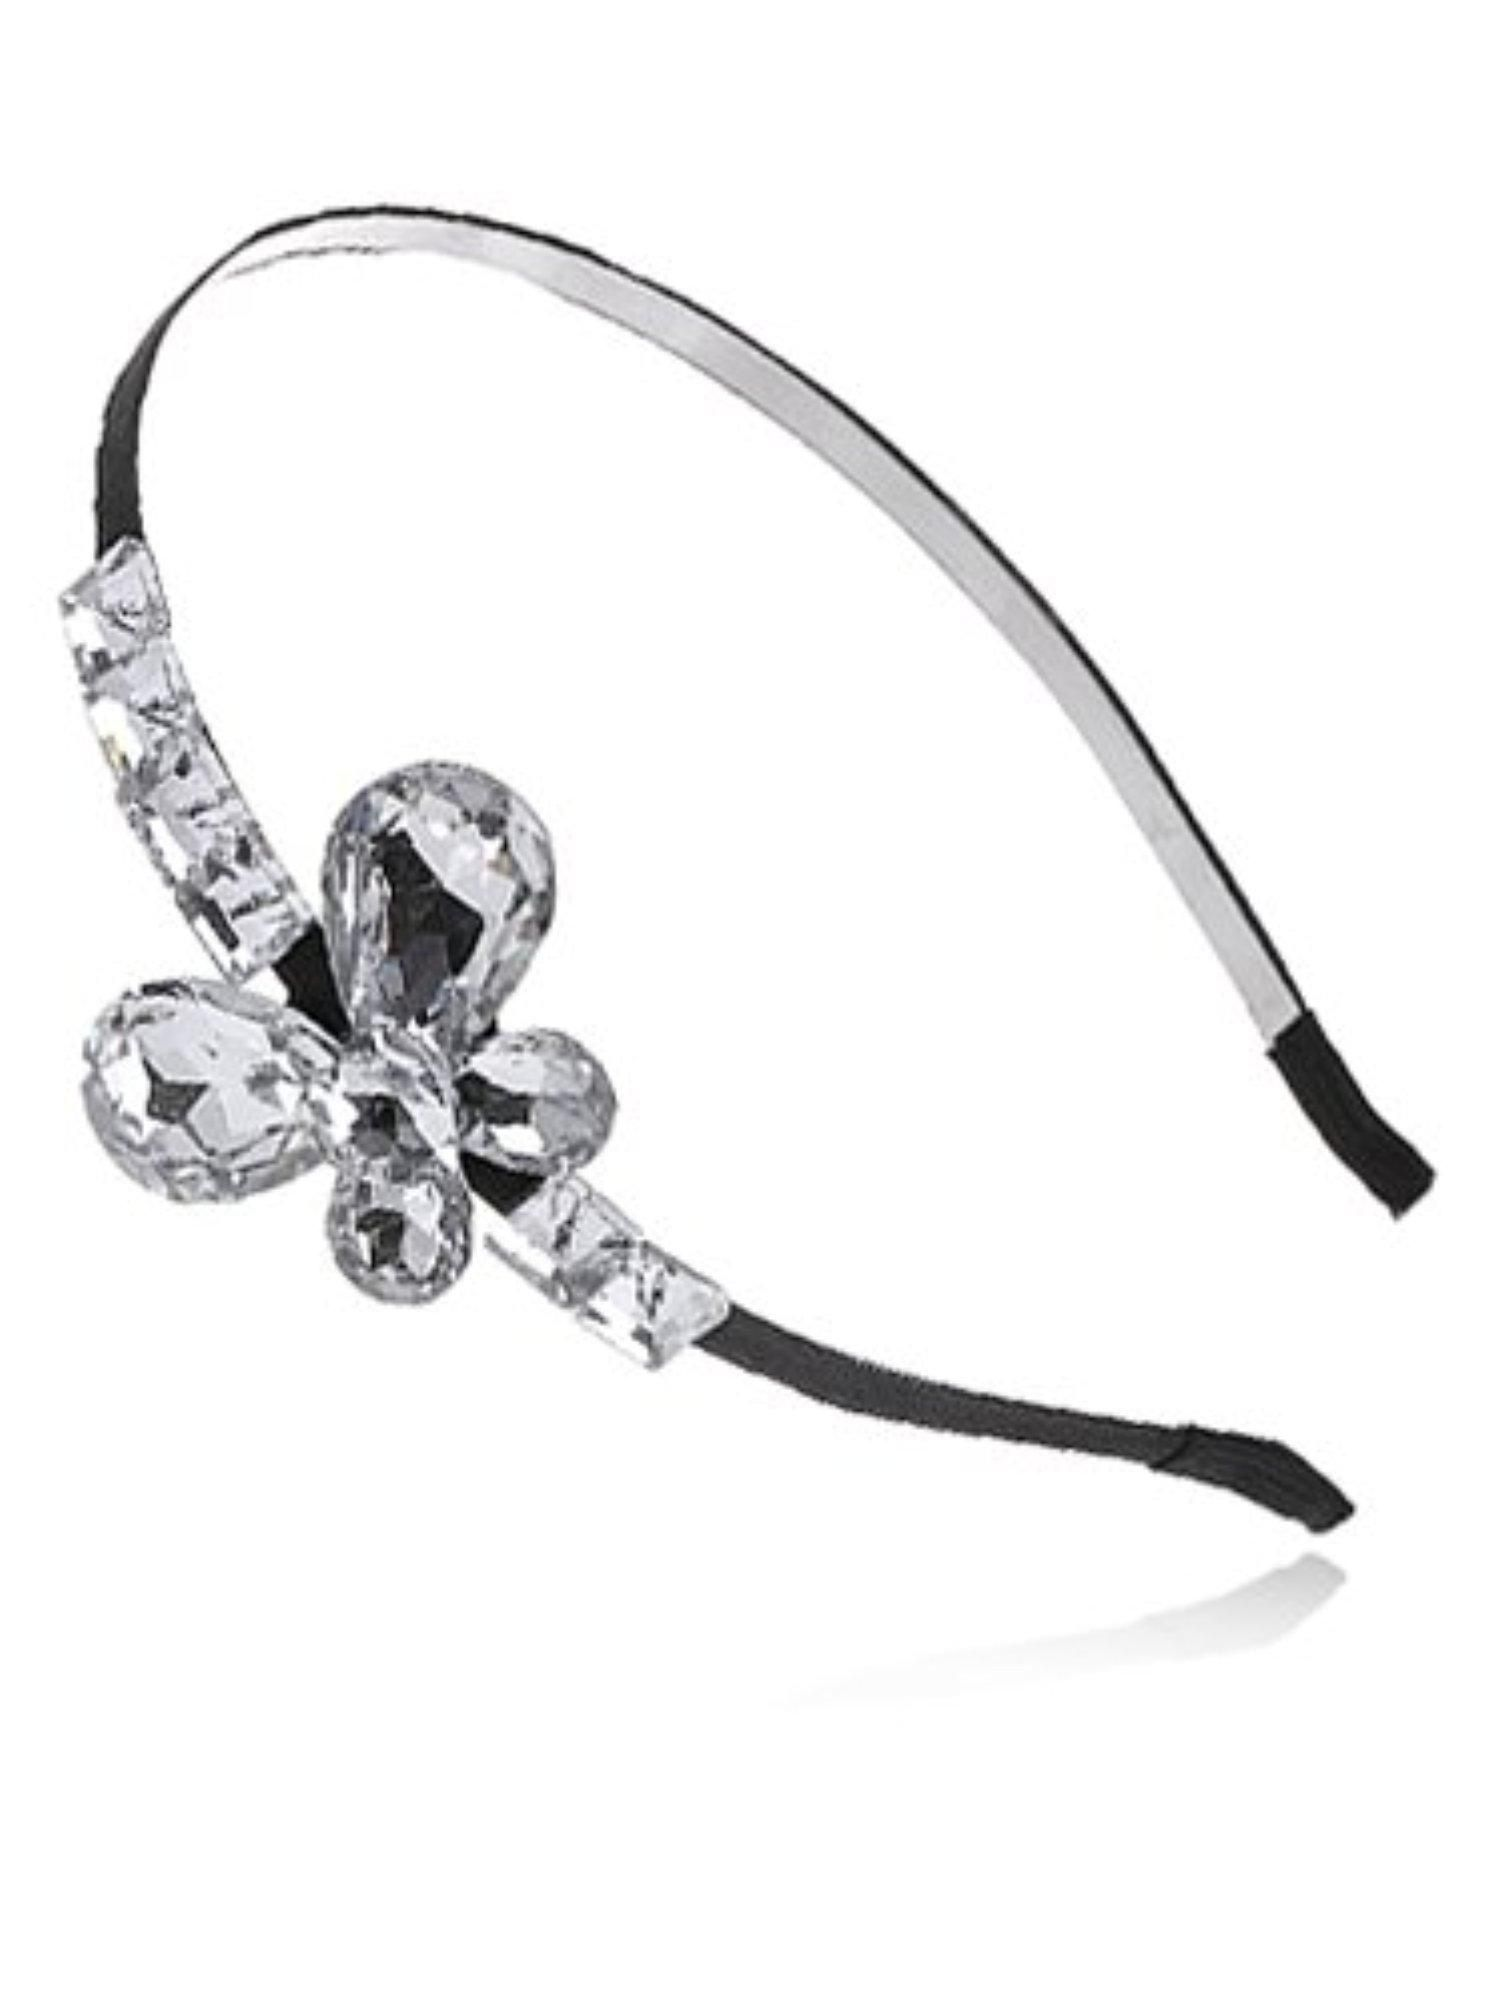 Alilang Black Diamond Colored Studded Rhinestones Butterfly Hair Piece  Headband - Brought to you by Avarsha.com 783828ea88c